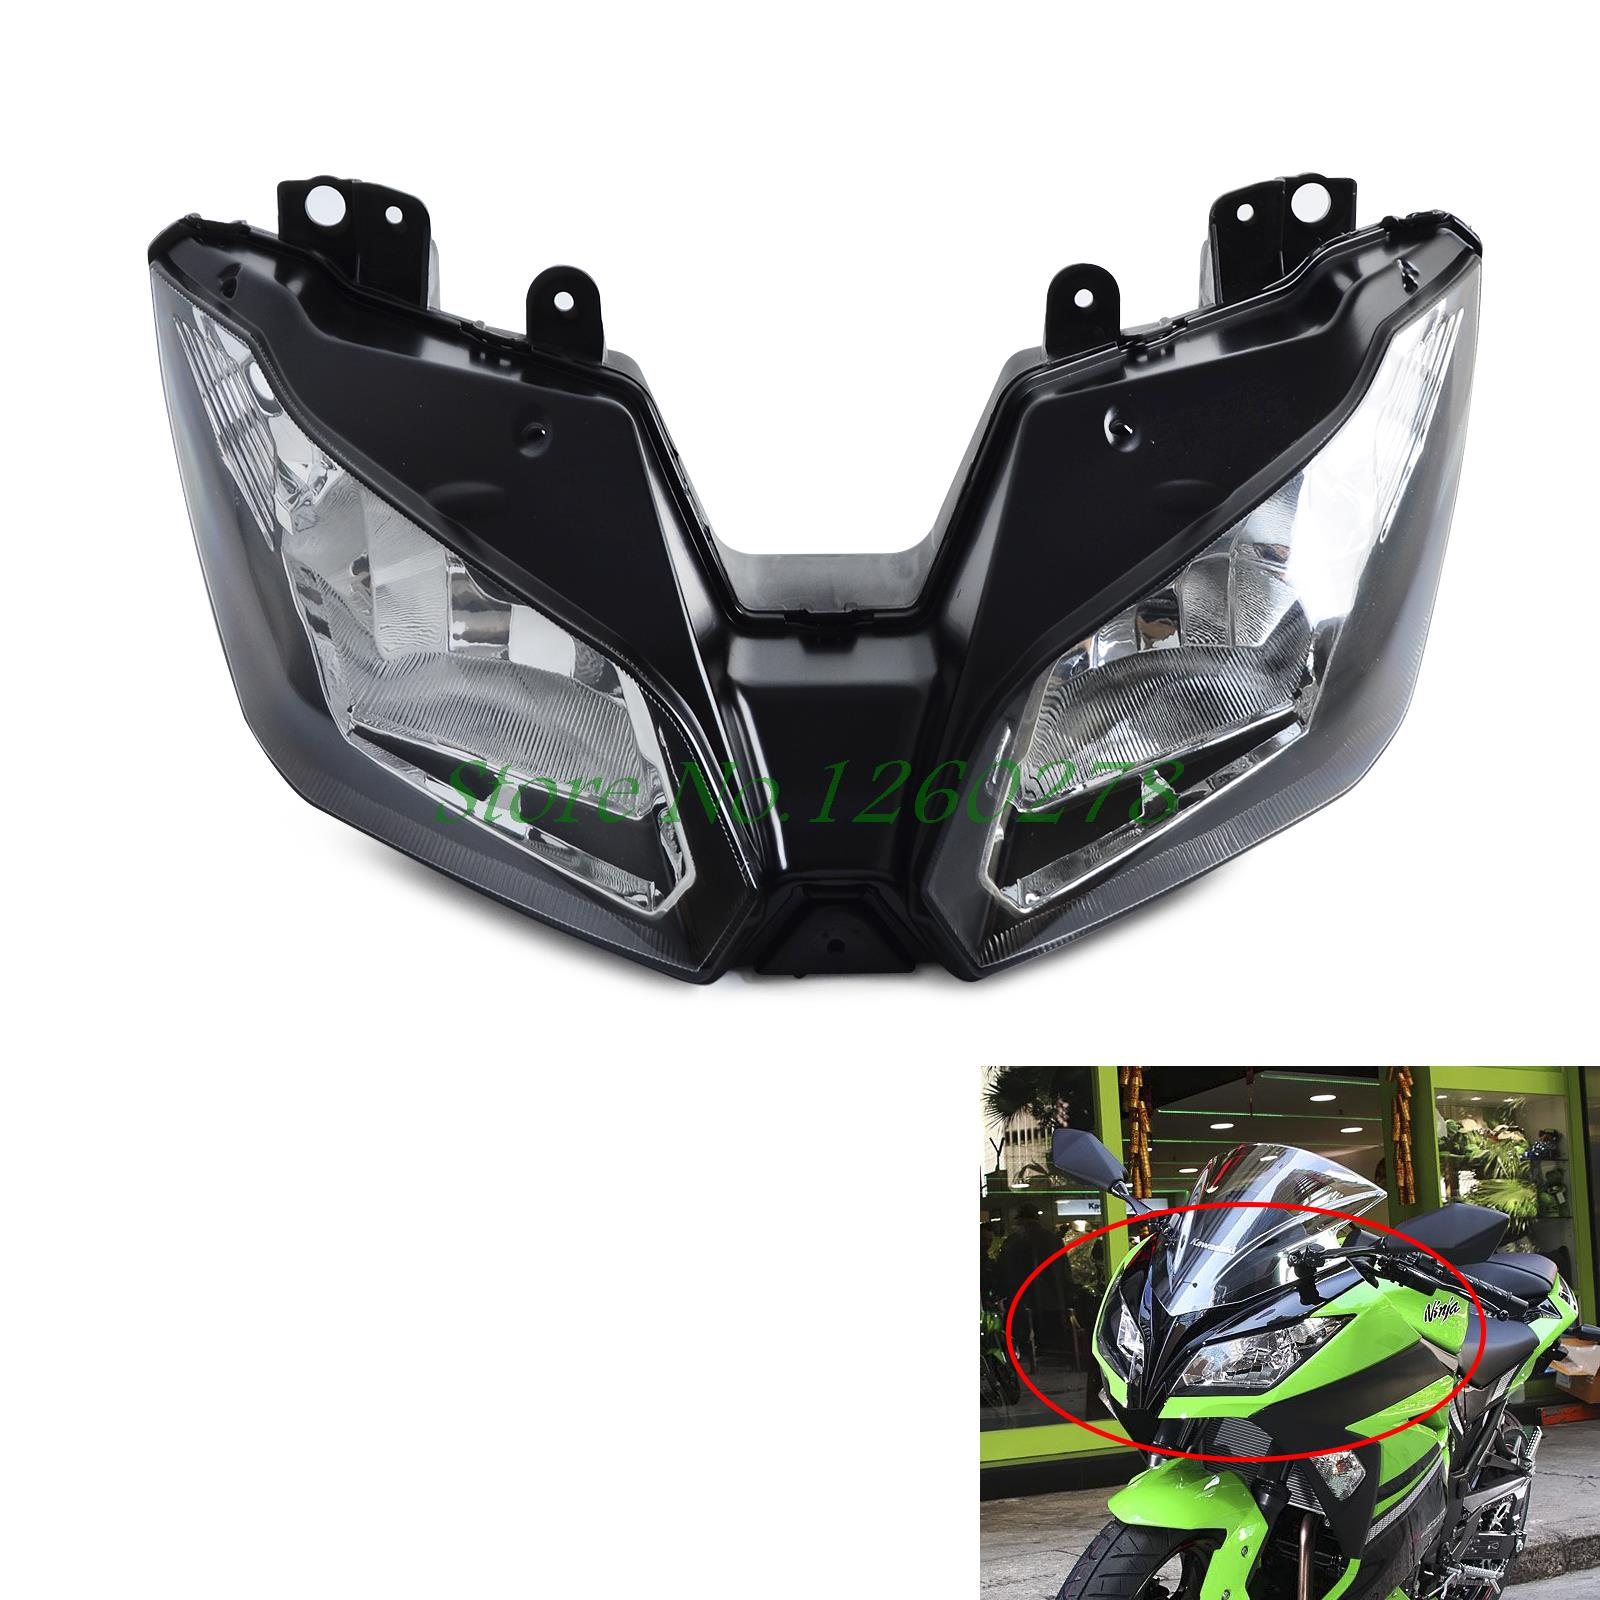 Motorcycle Headlights Headlamp Head Light Lamp Assembly For Kawasaki NINJA 300 2013 2014 2015 2016 VERSYS 650 1000 2015 2016 for kawasaki motorcycle chain adjuster tensioner autobike chain regulator ninja300 ninja 300 2013 2015 2016 2014